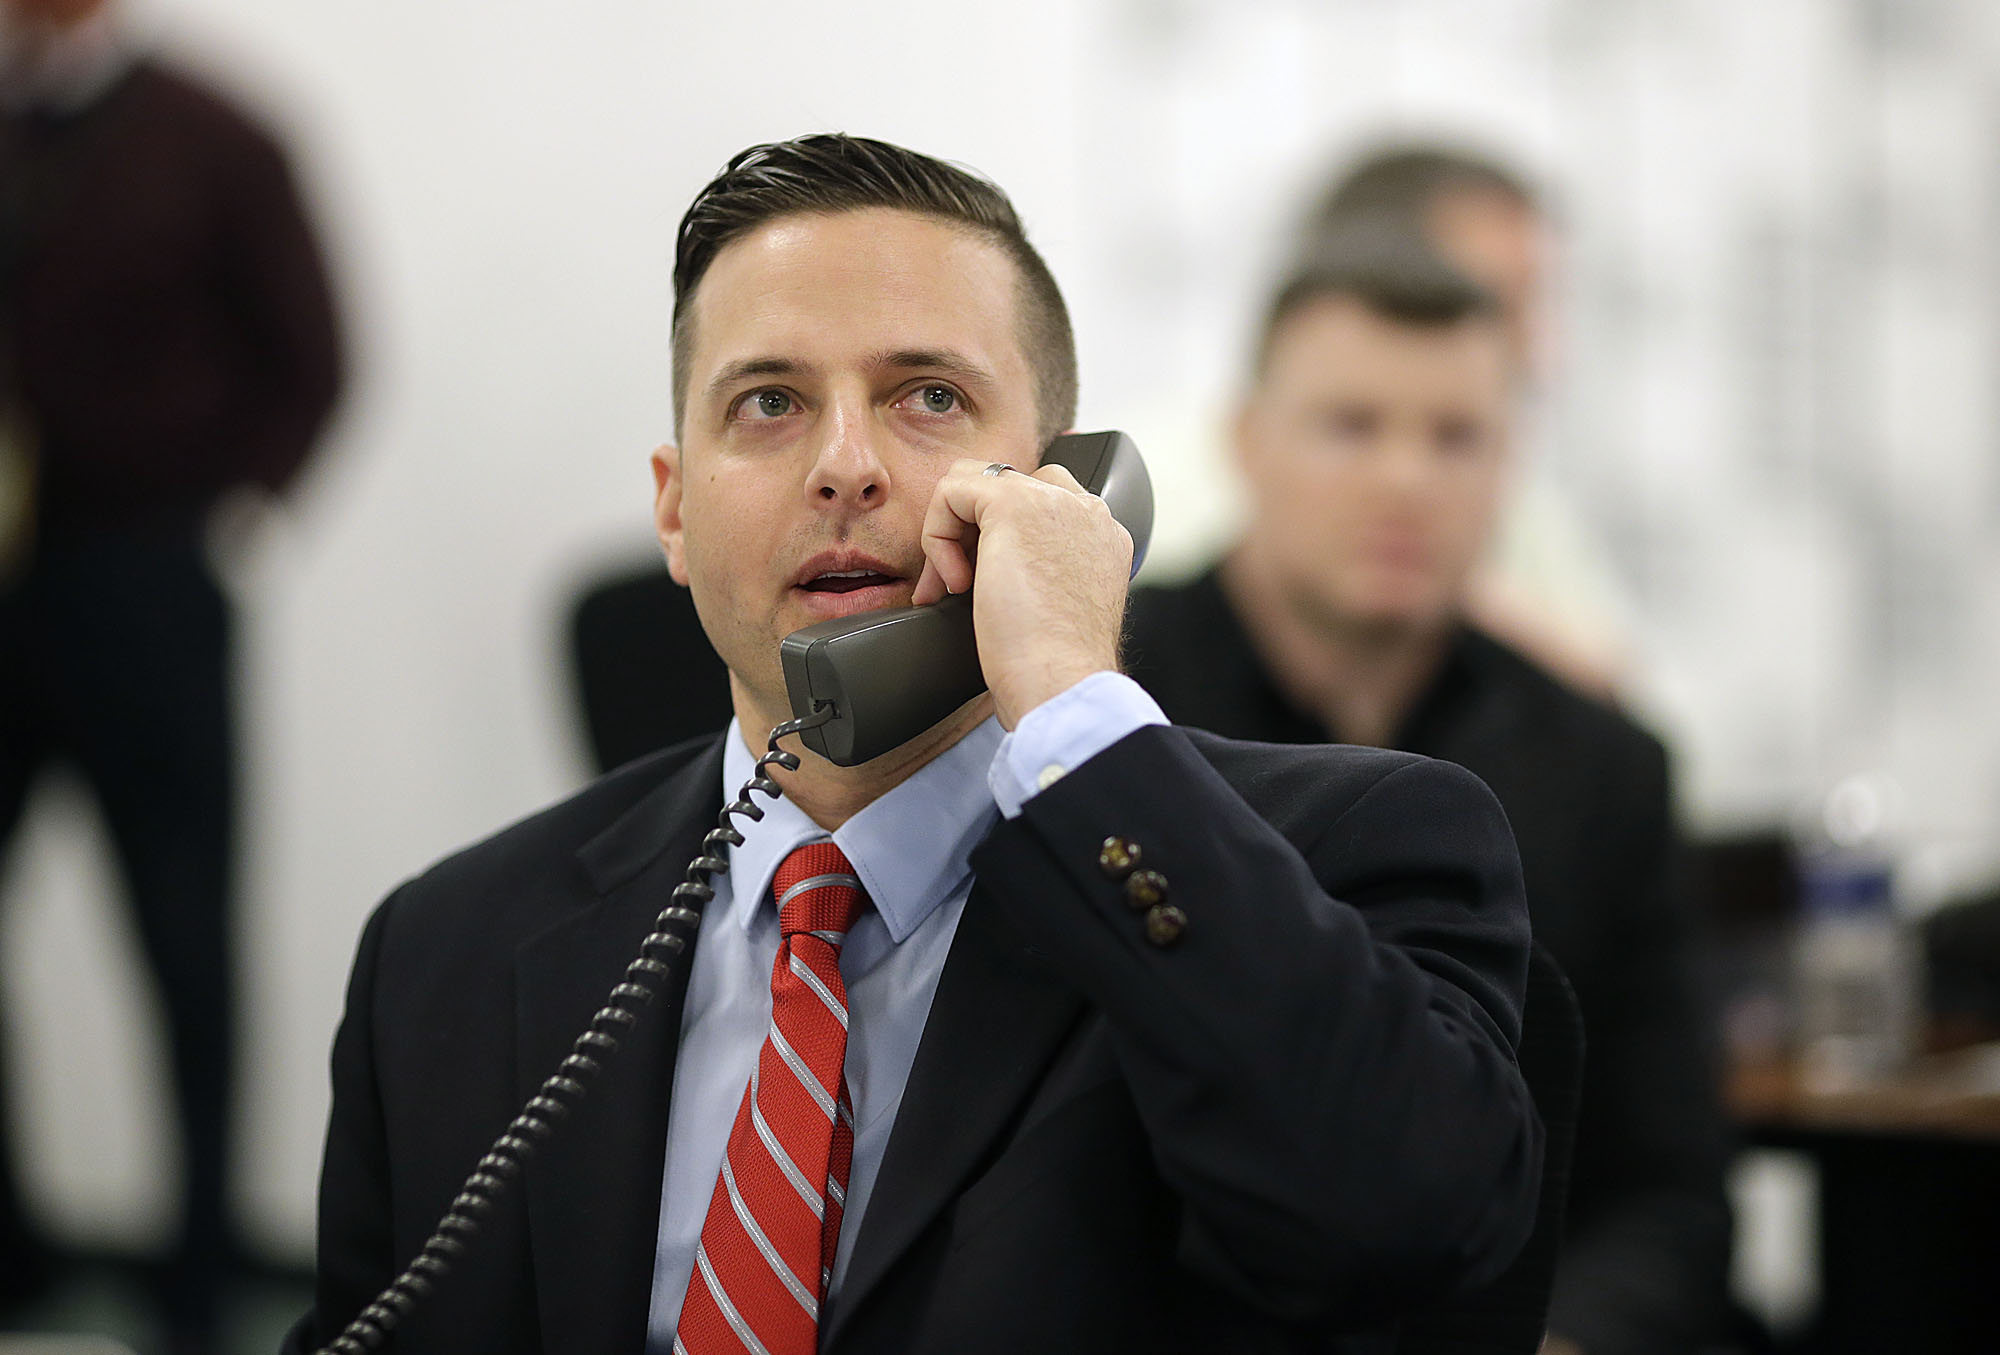 Green Bay Packers' Eliot Wolf, director of football operations, makes a phone call inside the war room during the 2016 NFL Football draft at Lambeau Field in Green Bay, Wis., on Thursday, April 28, 2016. (Evan Siegle/The Green Bay Press-Gazette via AP) NO